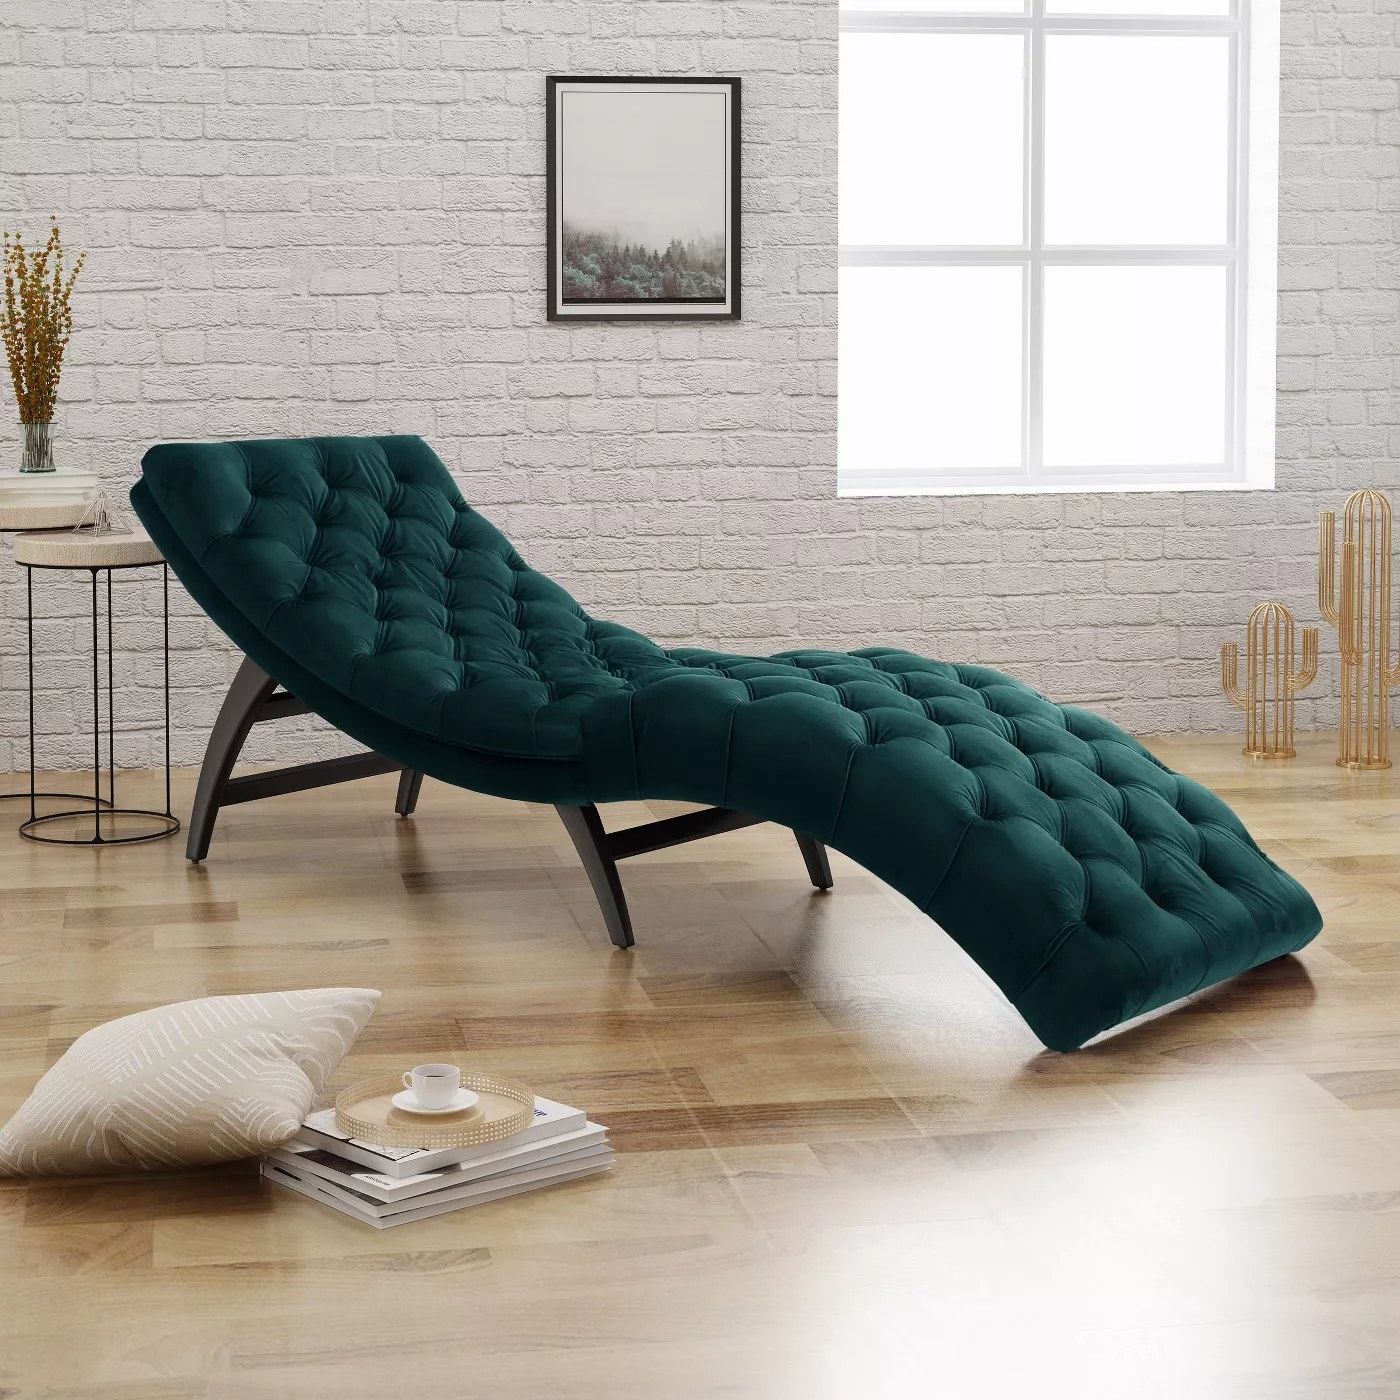 The teal chaise with a curved shape and tufted velvet texture in a living room